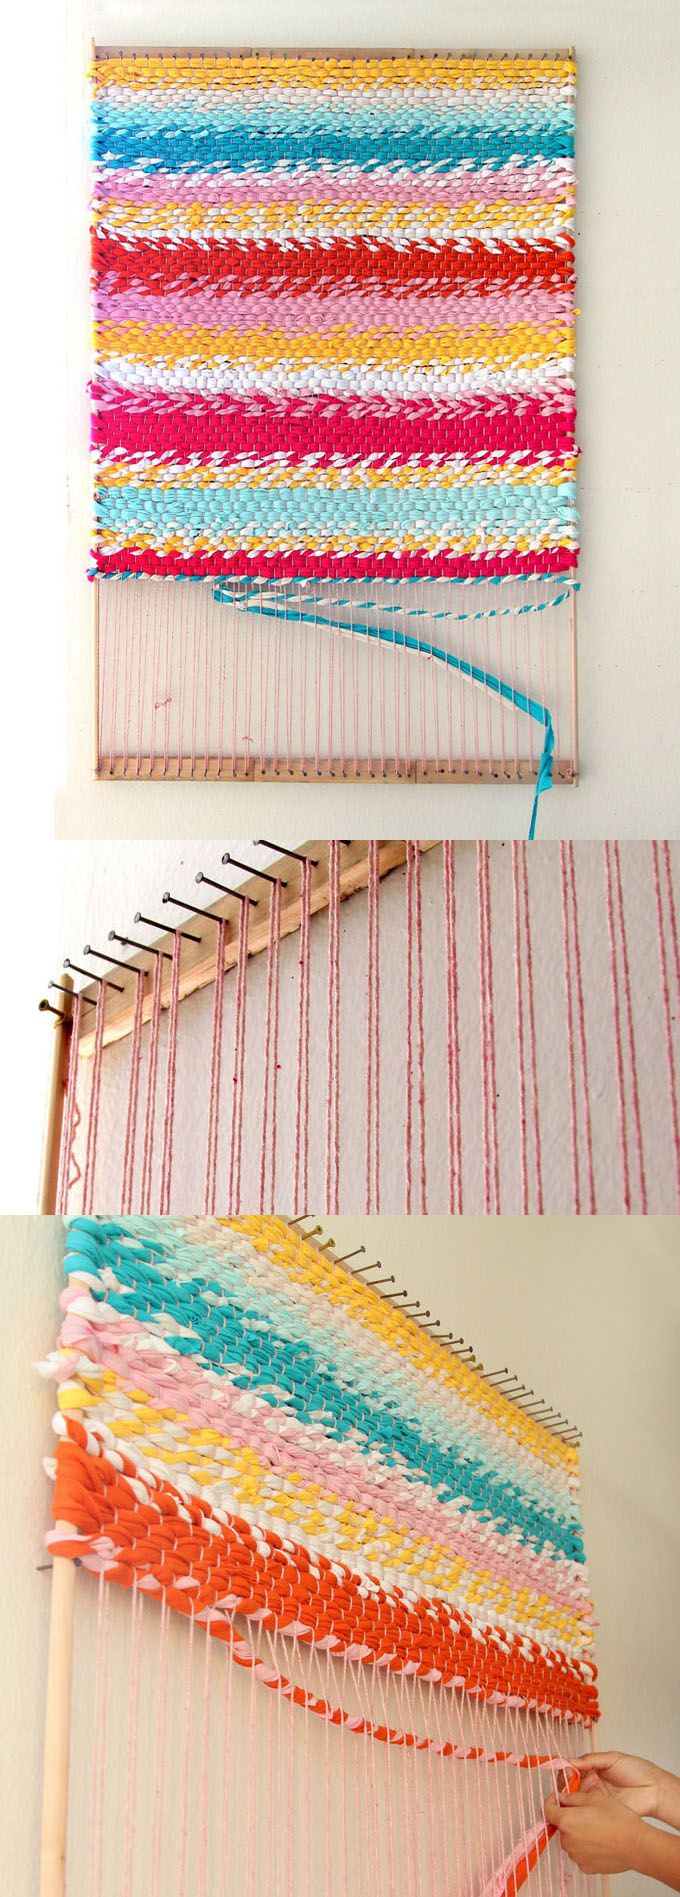 Make Loom Own Heddle Your